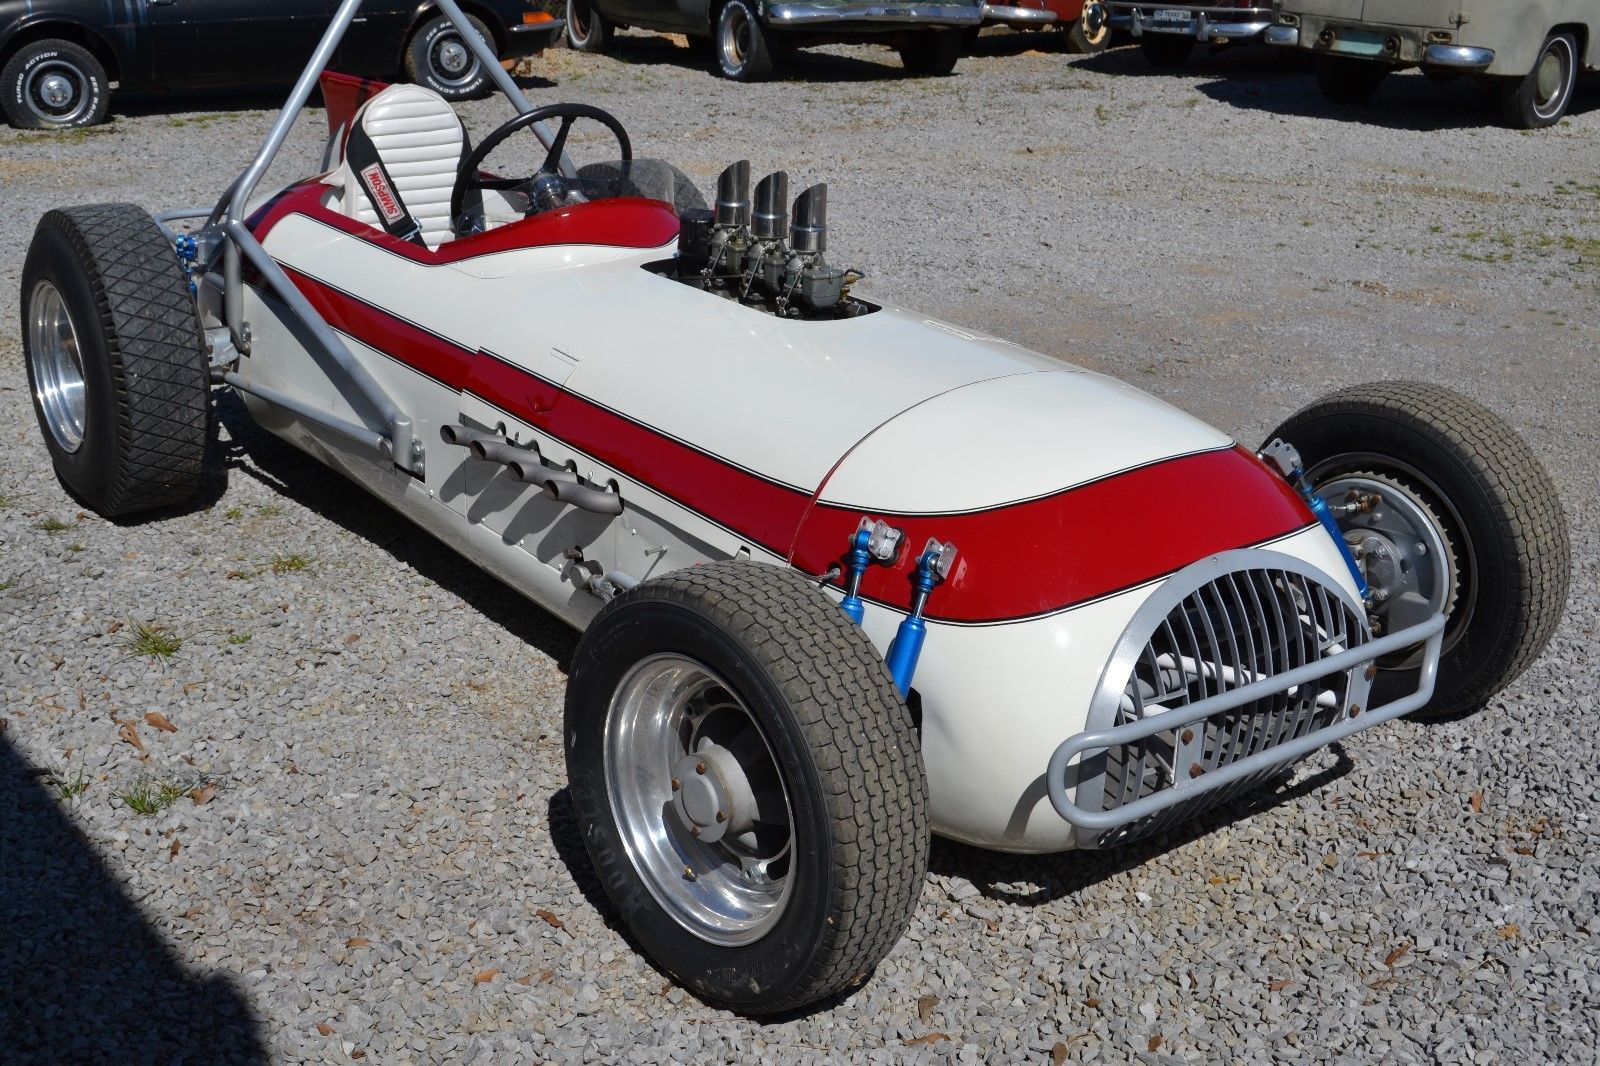 Looking For A Vintage Indy Car To Have Some Fun With? This 1950s Roadster Is Restored and Repowered